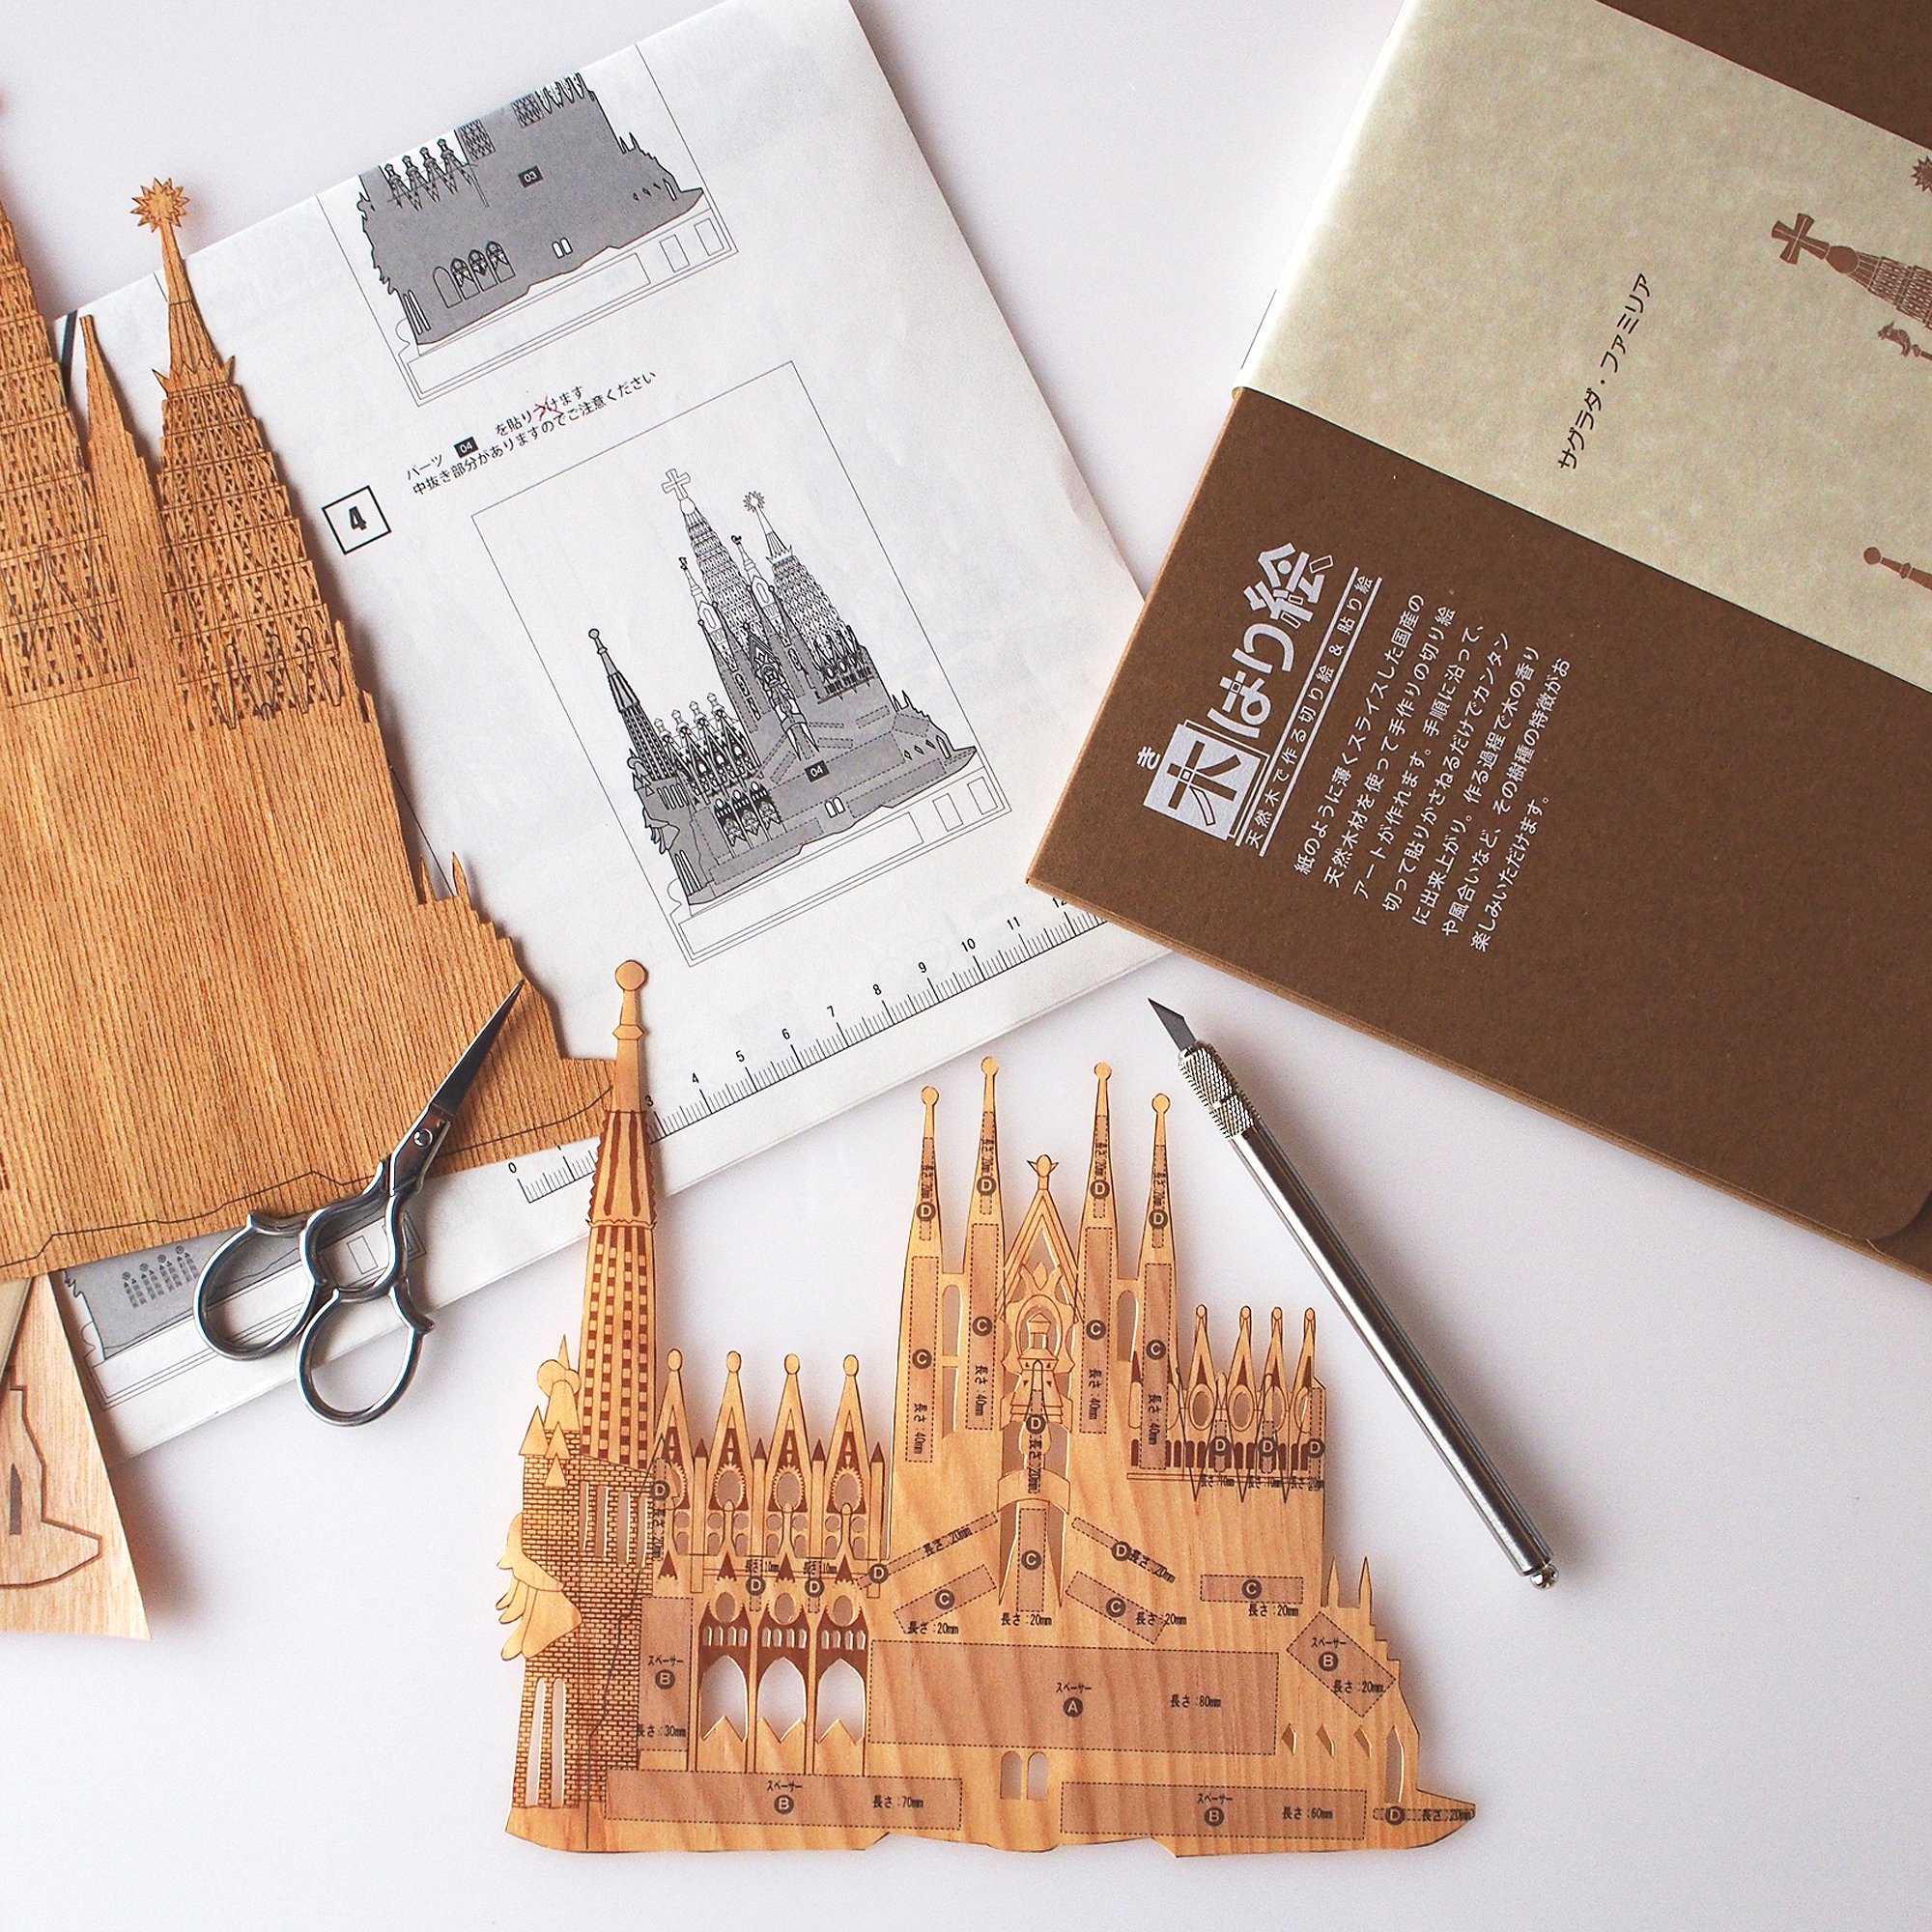 KINOWA Wooden Art Kit Kiharie Sagrada Familia Made in Japan by KINOWA (Image #4)